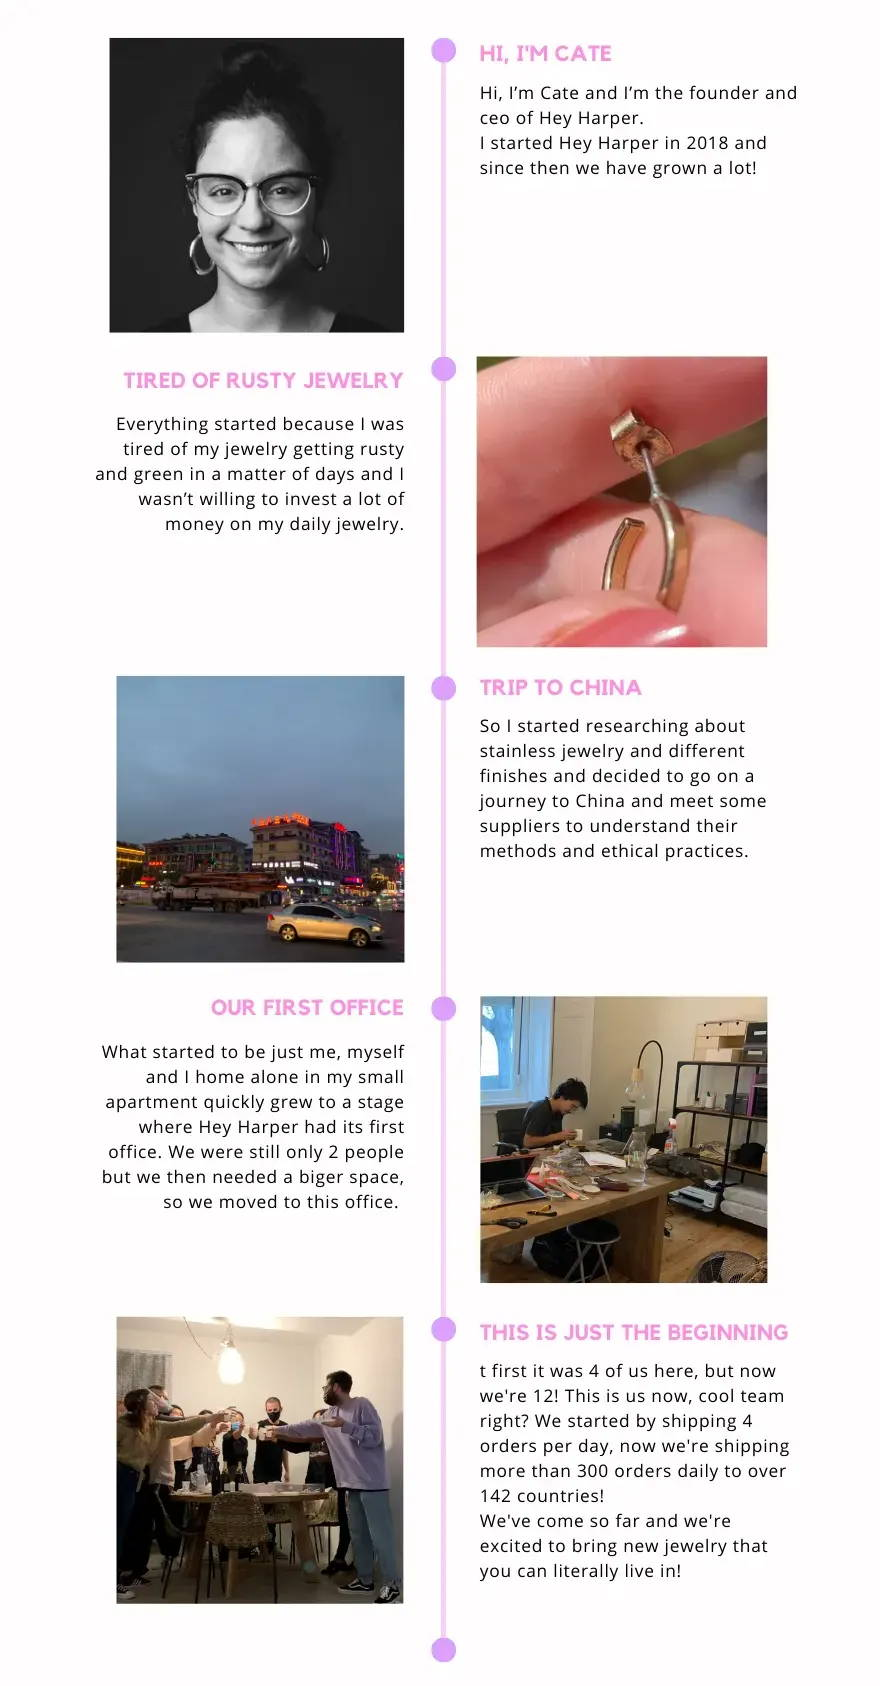 Hi, I'm Cate and I'm the founder of Hey Harper. Everything started because I was tired of my jewelry getting rusty and green in a matter of days and I wasn't willing to invest a lot of money on my daily jewelry. So I started researching about stainless jewelry and different finishes and decided to go on a journey to China and meet some suppliers to understand their methods and ethical practices. What started to be just me, myself and I home alone in my small apartment quickly grew to a stage where Hey Harper had its first office. We were still only 2 people but... ...we then needed a biger space, so we moved to this office. At first it was 4 of us here, but now we're 12! This is us now, cool team right? We started by shipping 4 orders per day, now we're shipping more than 300 orders daily to over 142 countries! We've come so far and we're excited to bring new jewelry to you! Thank you for supporting us!